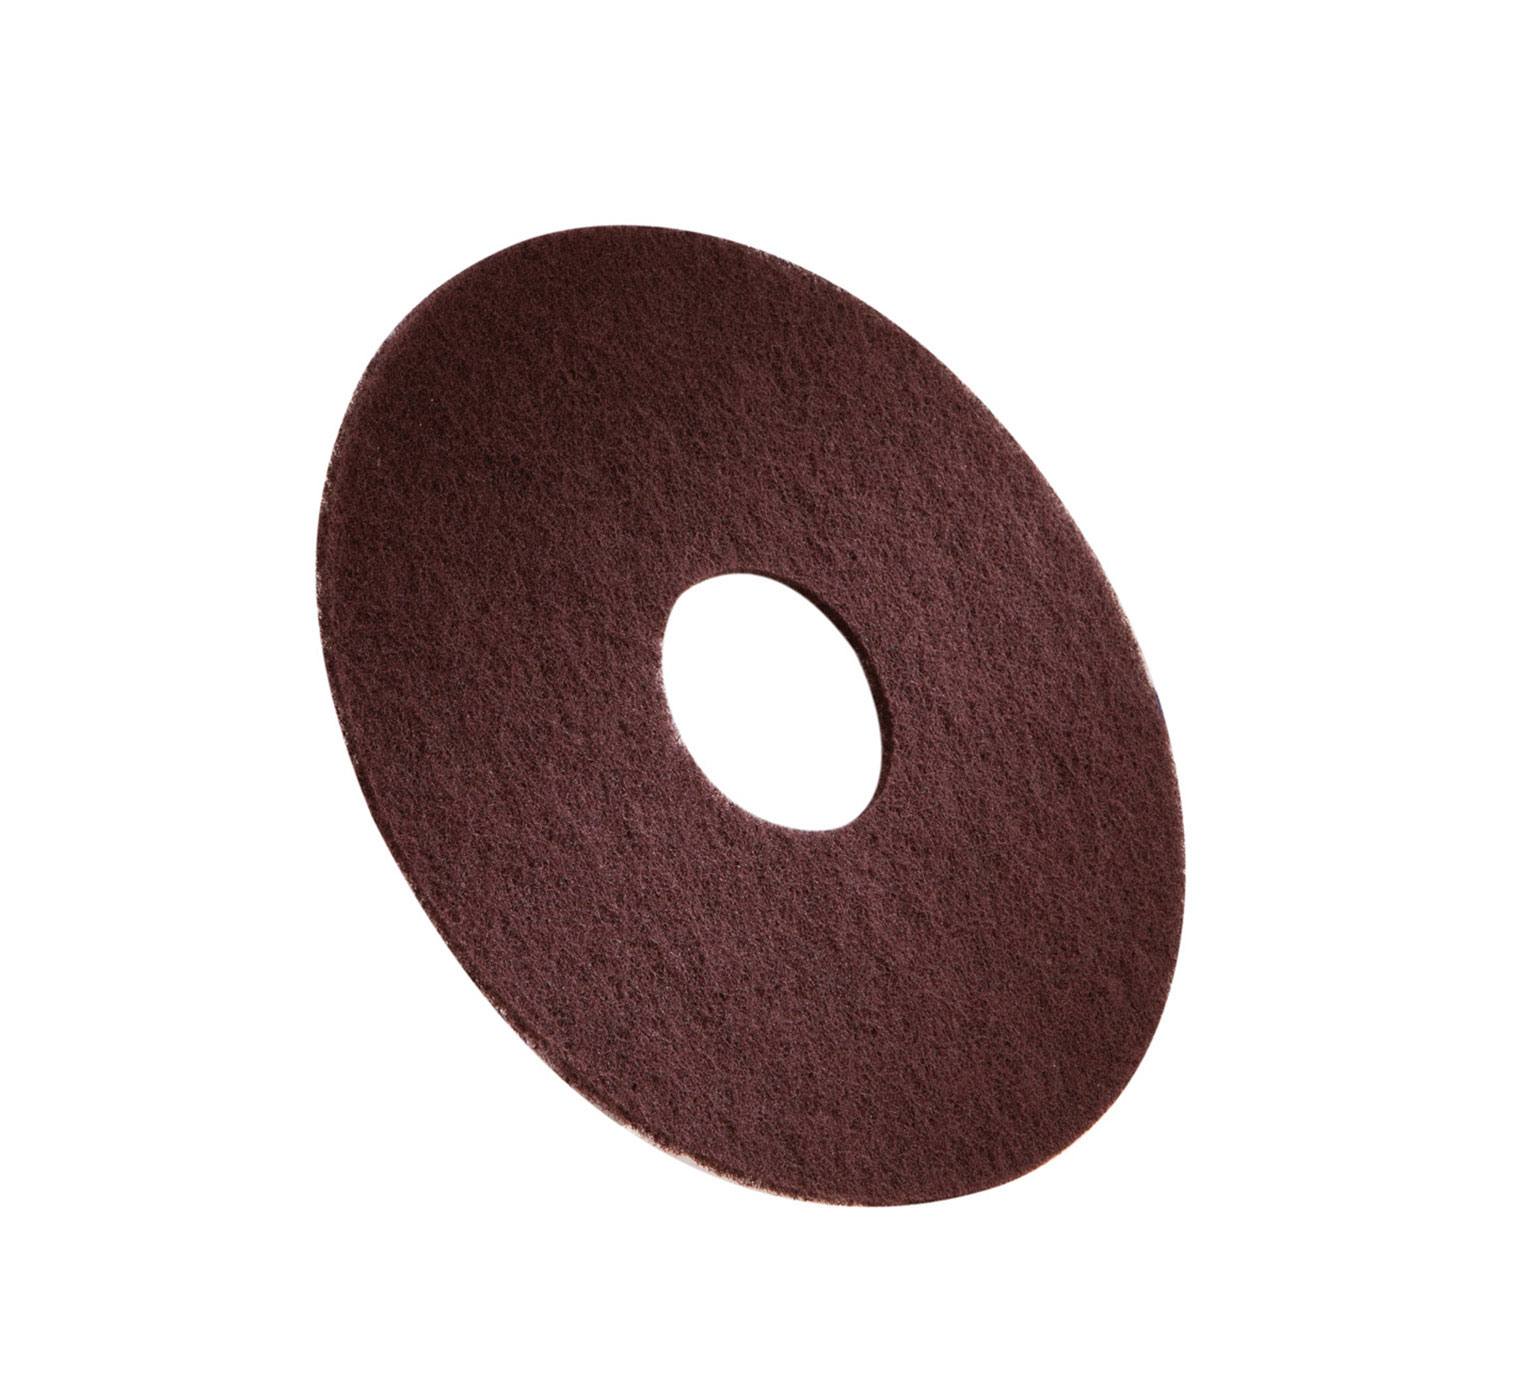 1051020 3M Maroon Stripping Pad – 12 in / 304.8 mm alt 1